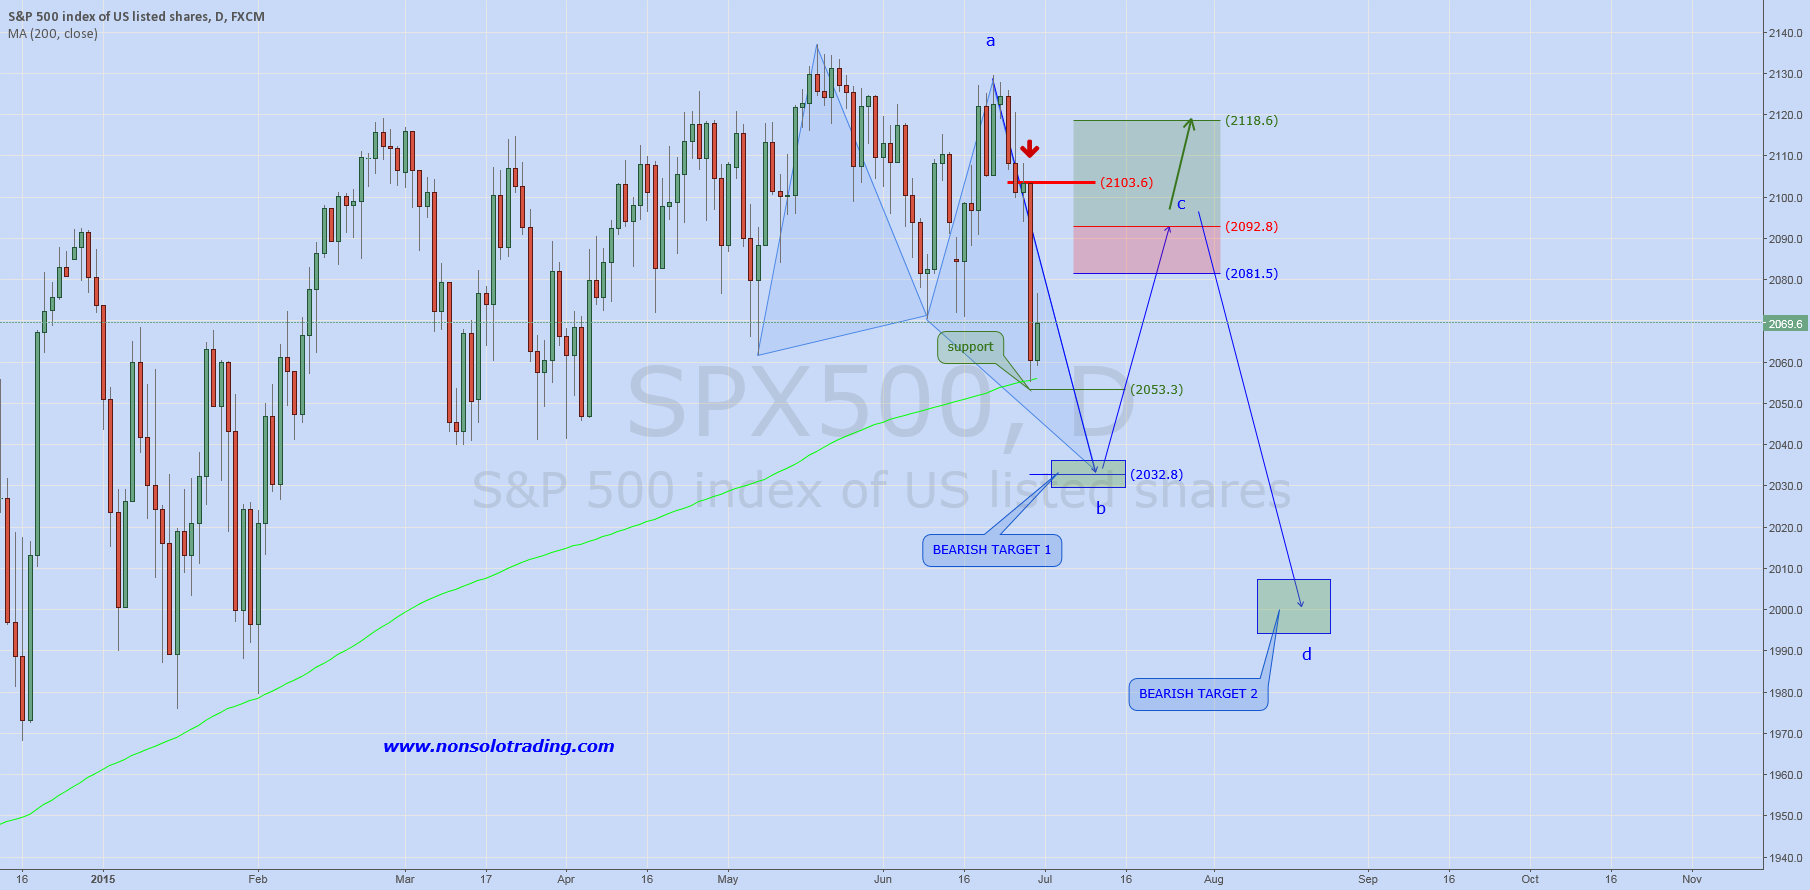 SP500: Daily Analysis